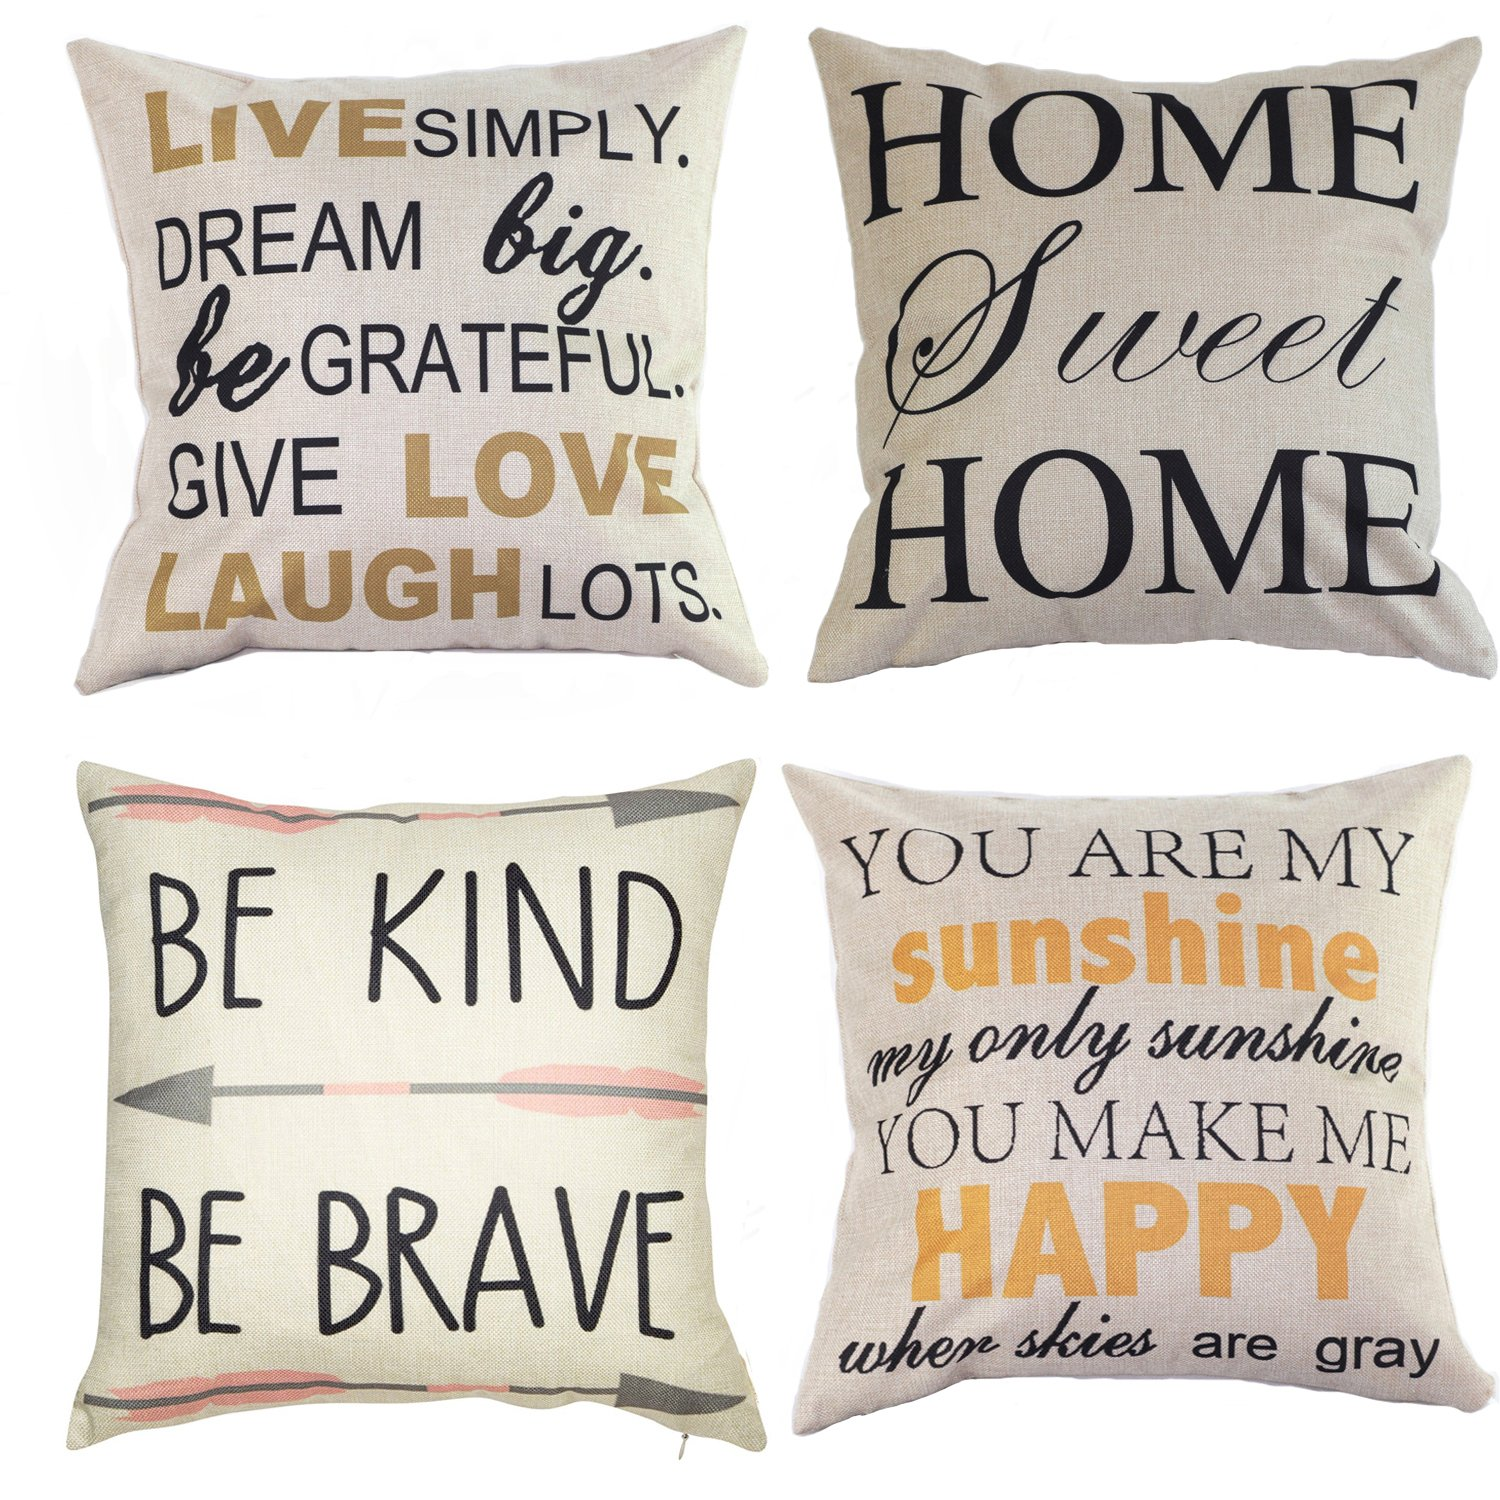 Wonder4 Decorative Quote Words Pillow Case Cotton Linen Square Decorative Throw Pillow Covers Cushion Cover 18'' x 18'' Be Kind Be Brave,Home Sweet Home Love in Simple Words